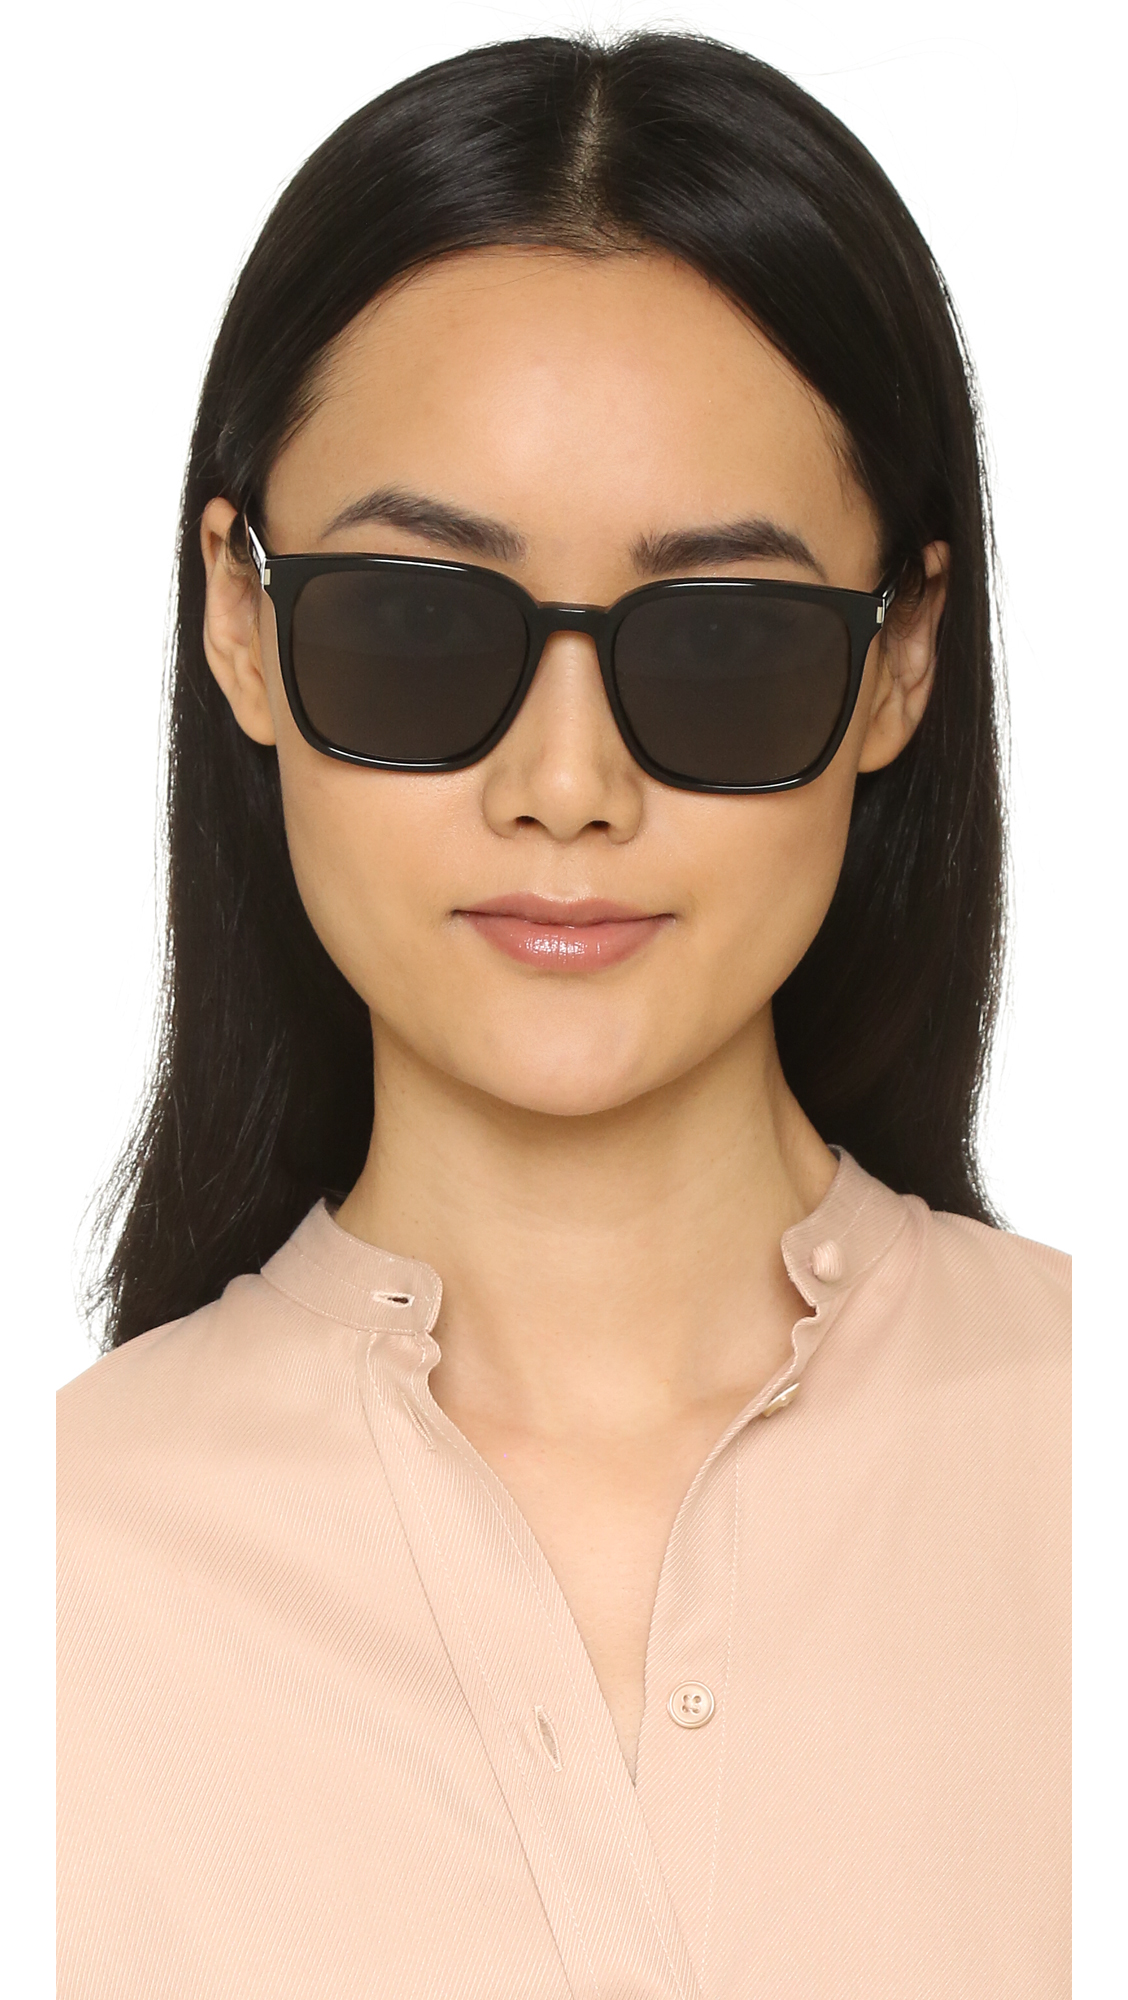 06a4d5c0a448 Saint Laurent SL 93 Mineral Glass Sunglasses | SHOPBOP